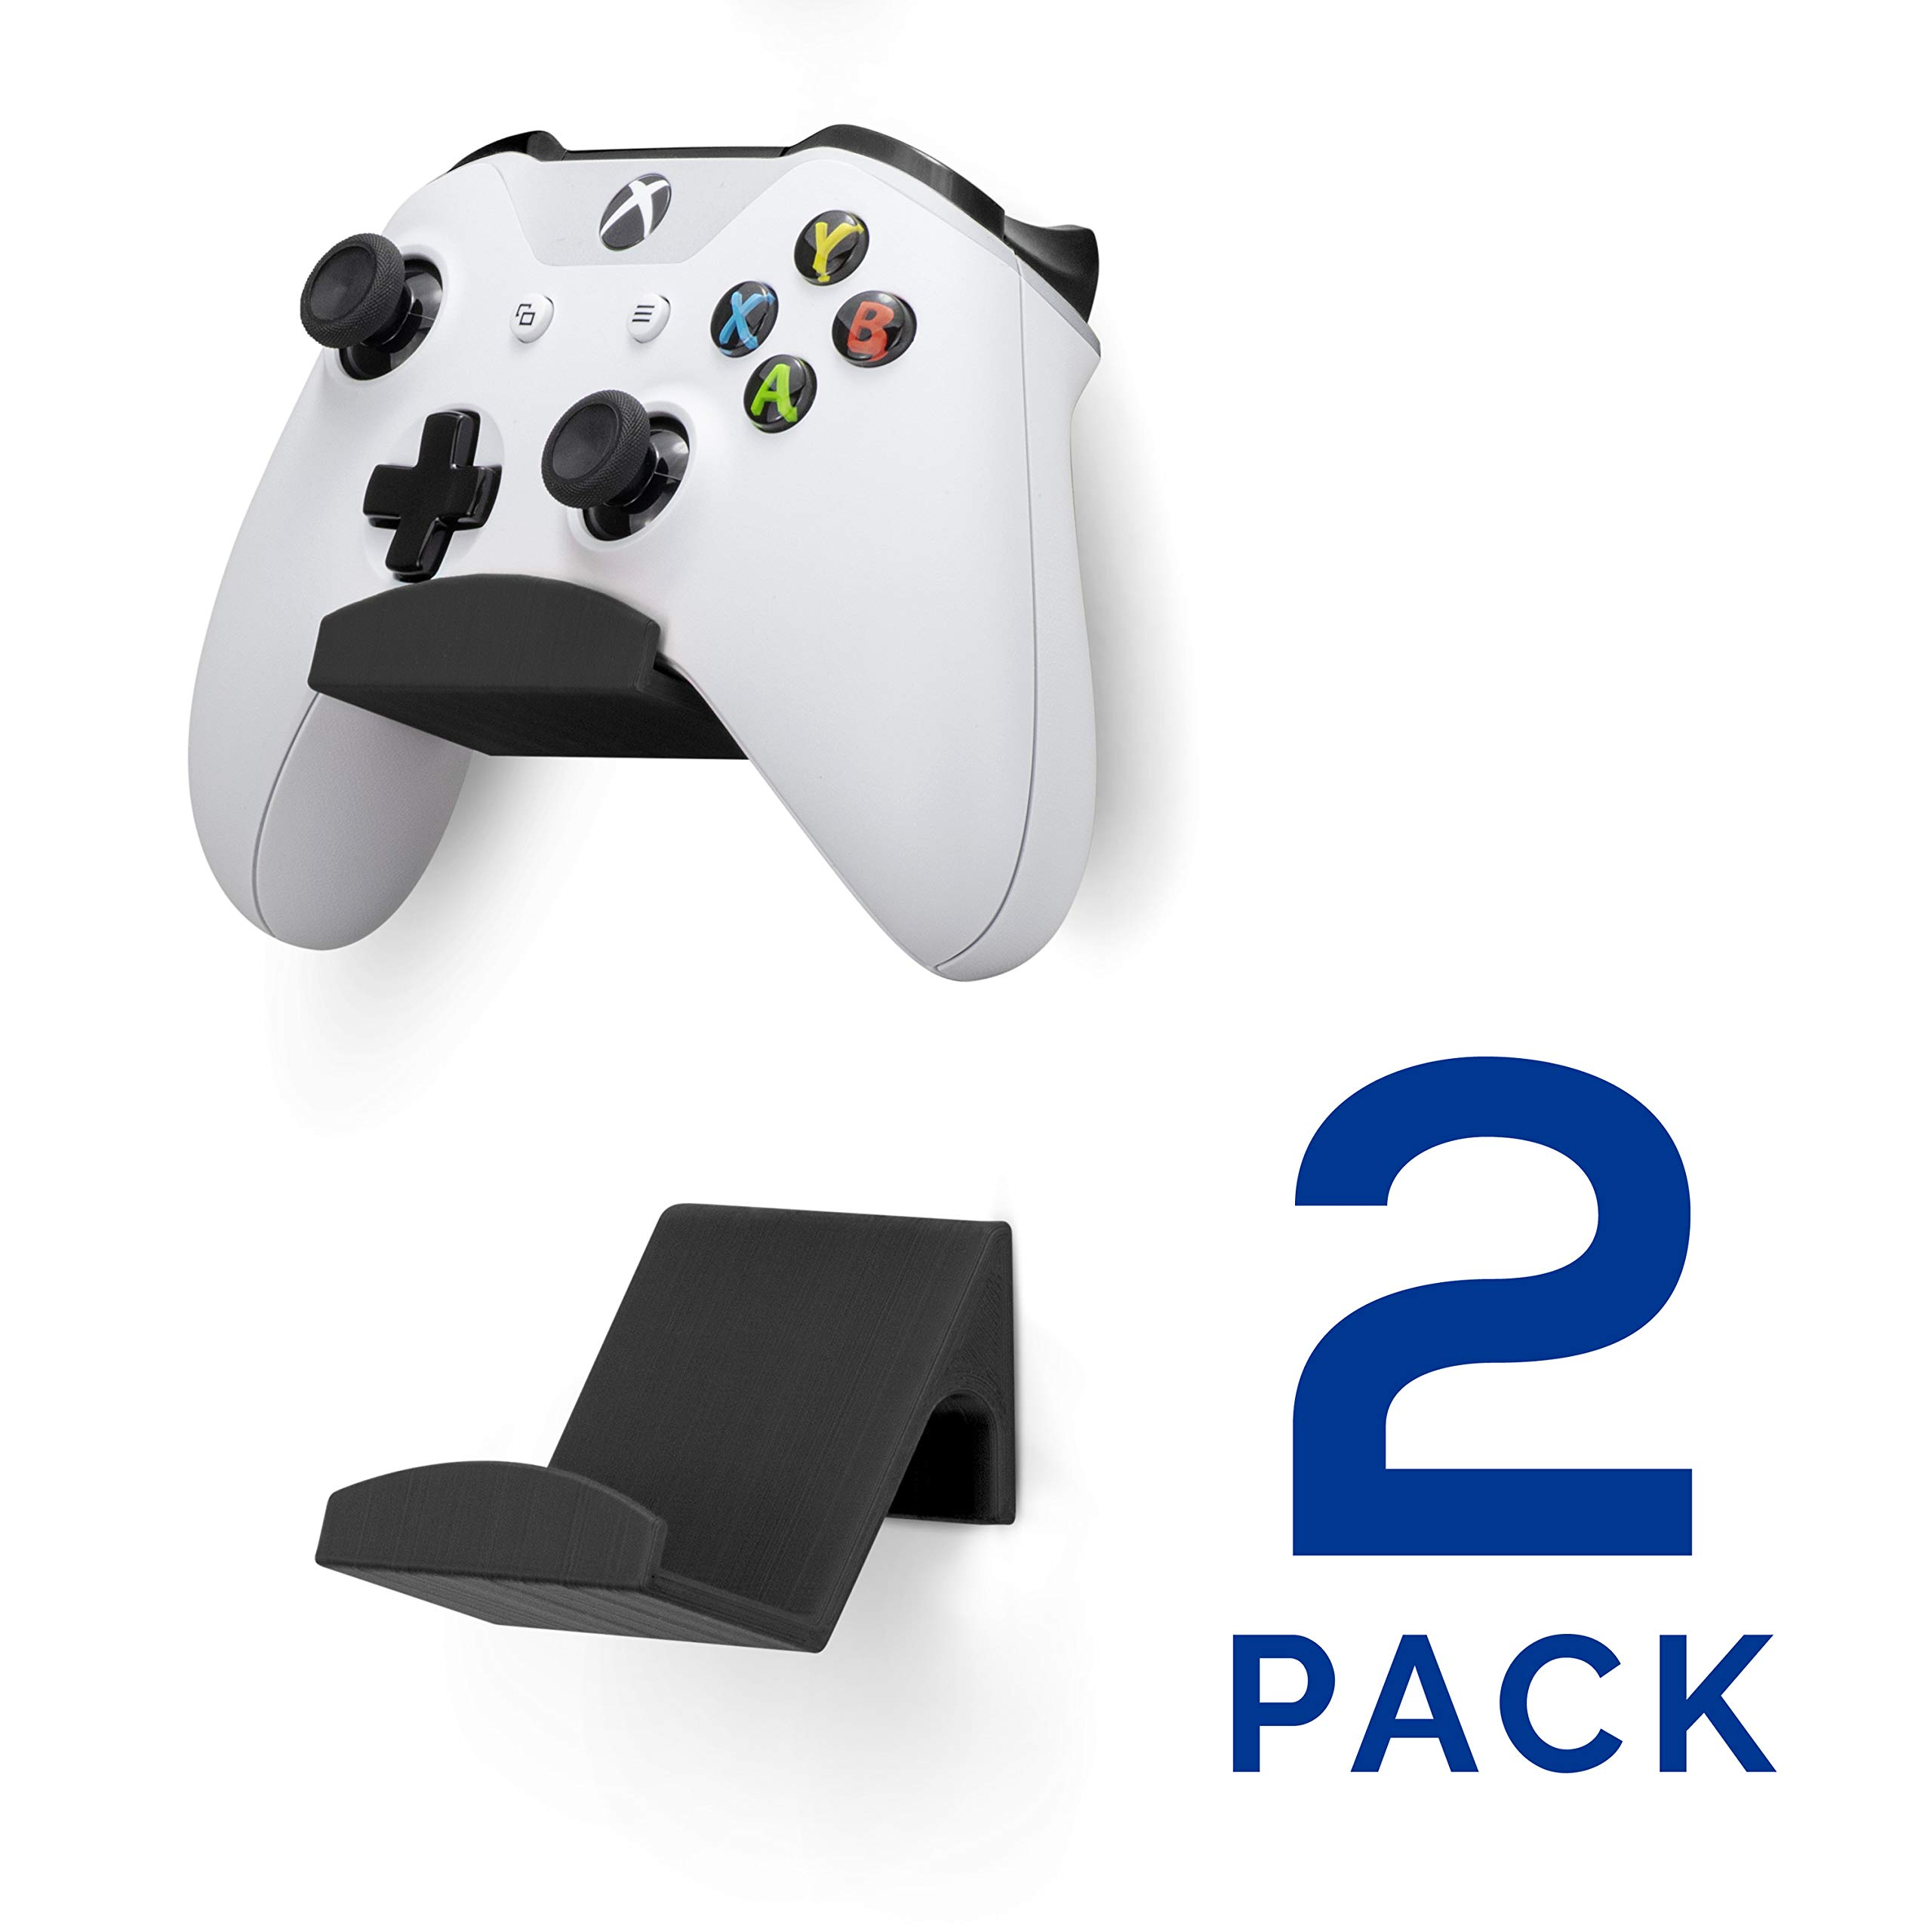 Game Controller Wall Mount Stand Holder (2 Pack) for XBOX ONE SWITCH PS4 STEAM PC NINTENDO, Universal Game Controller Accessories - No screws, Stick on, Black By Brainwavz by BRAINWAVZ